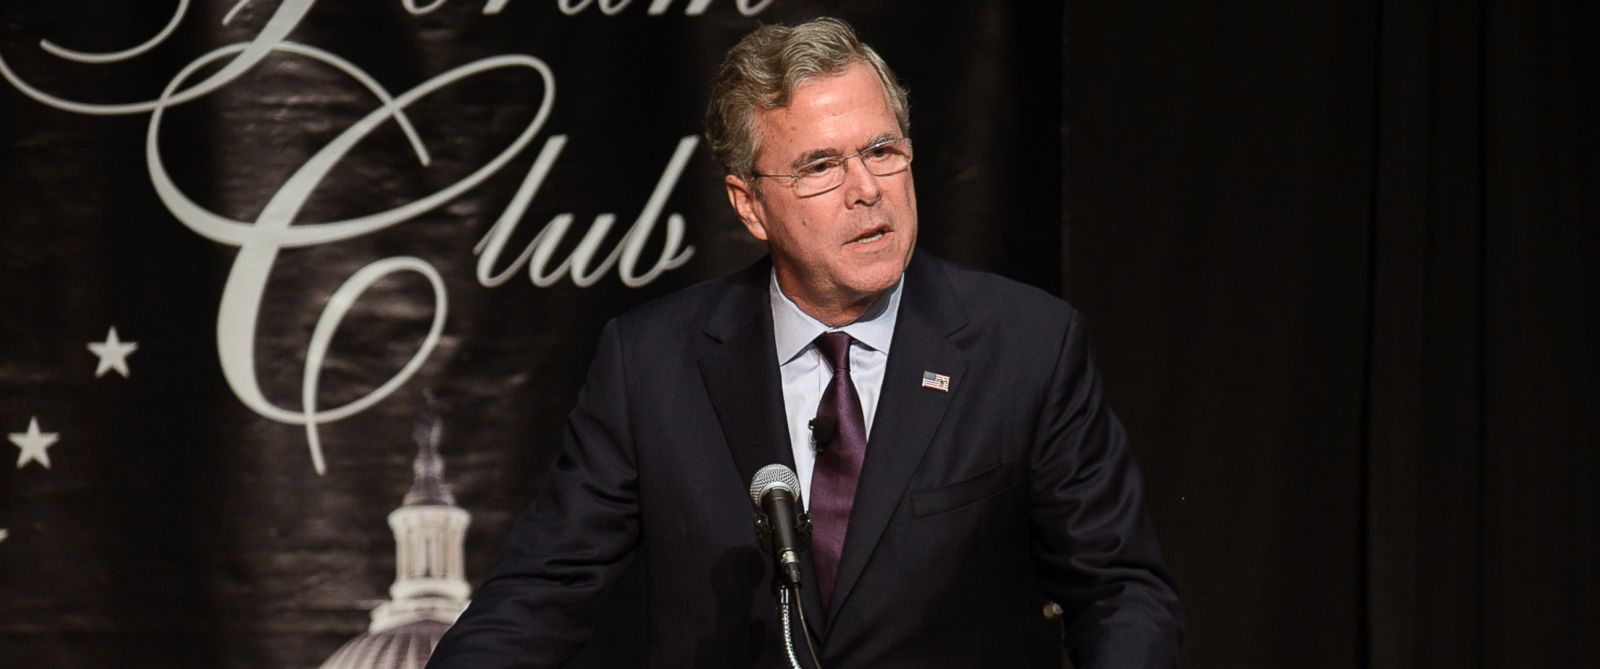 PHOTO: Republican presidential candidate Jeb Bush speaks at the Forum Club of the Palm Beaches on Monday, Dec. 28, 2015, in West Palm Beach, Fla.